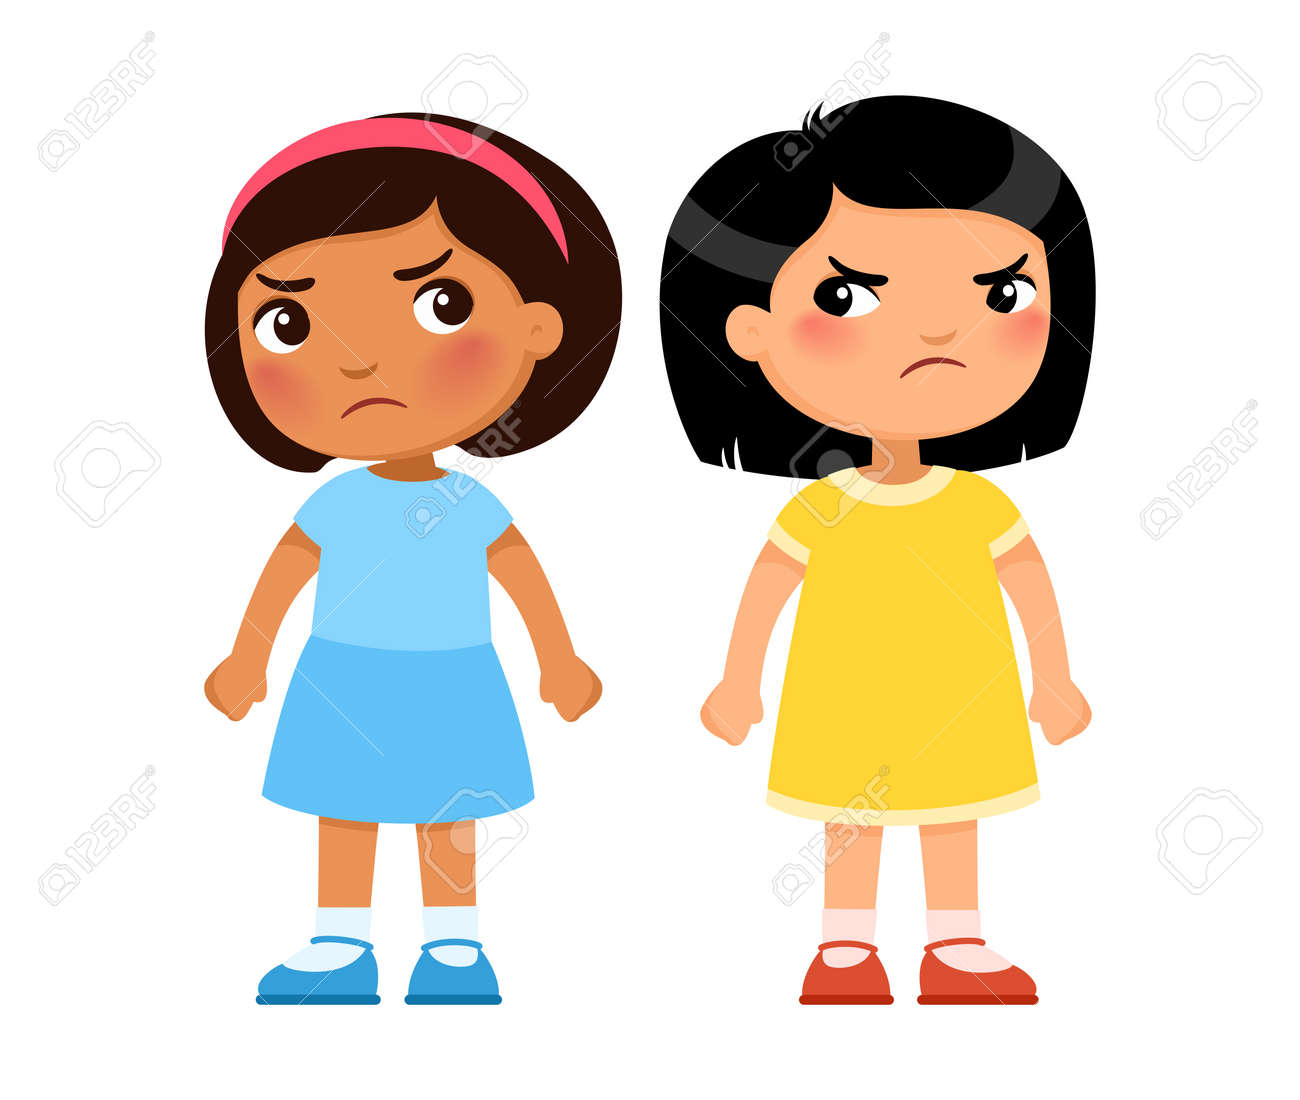 Two multiracial little girls look viciously at each other, cartoon characters. Angry children, enmity or rivalry concept. Vector illustration. - 170487278